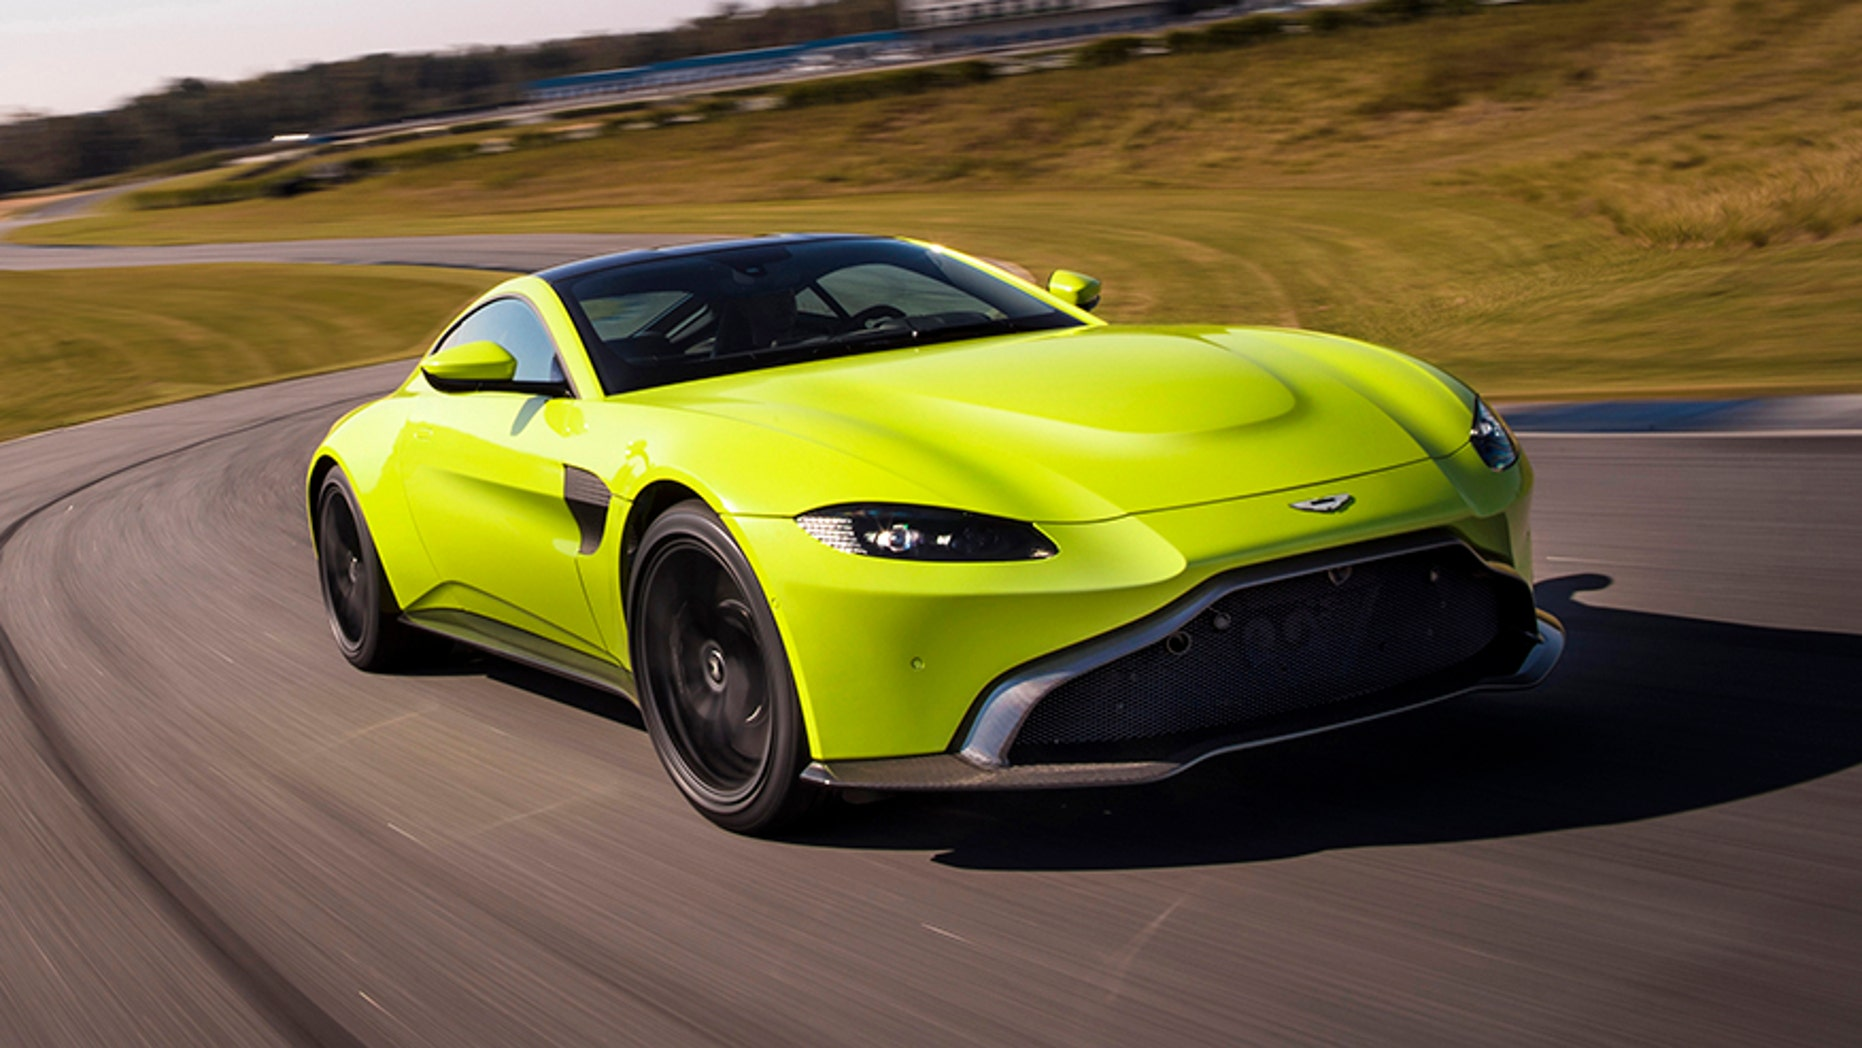 Budget Bond Car 2019 Aston Martin Vantage Has Looks That Thrill